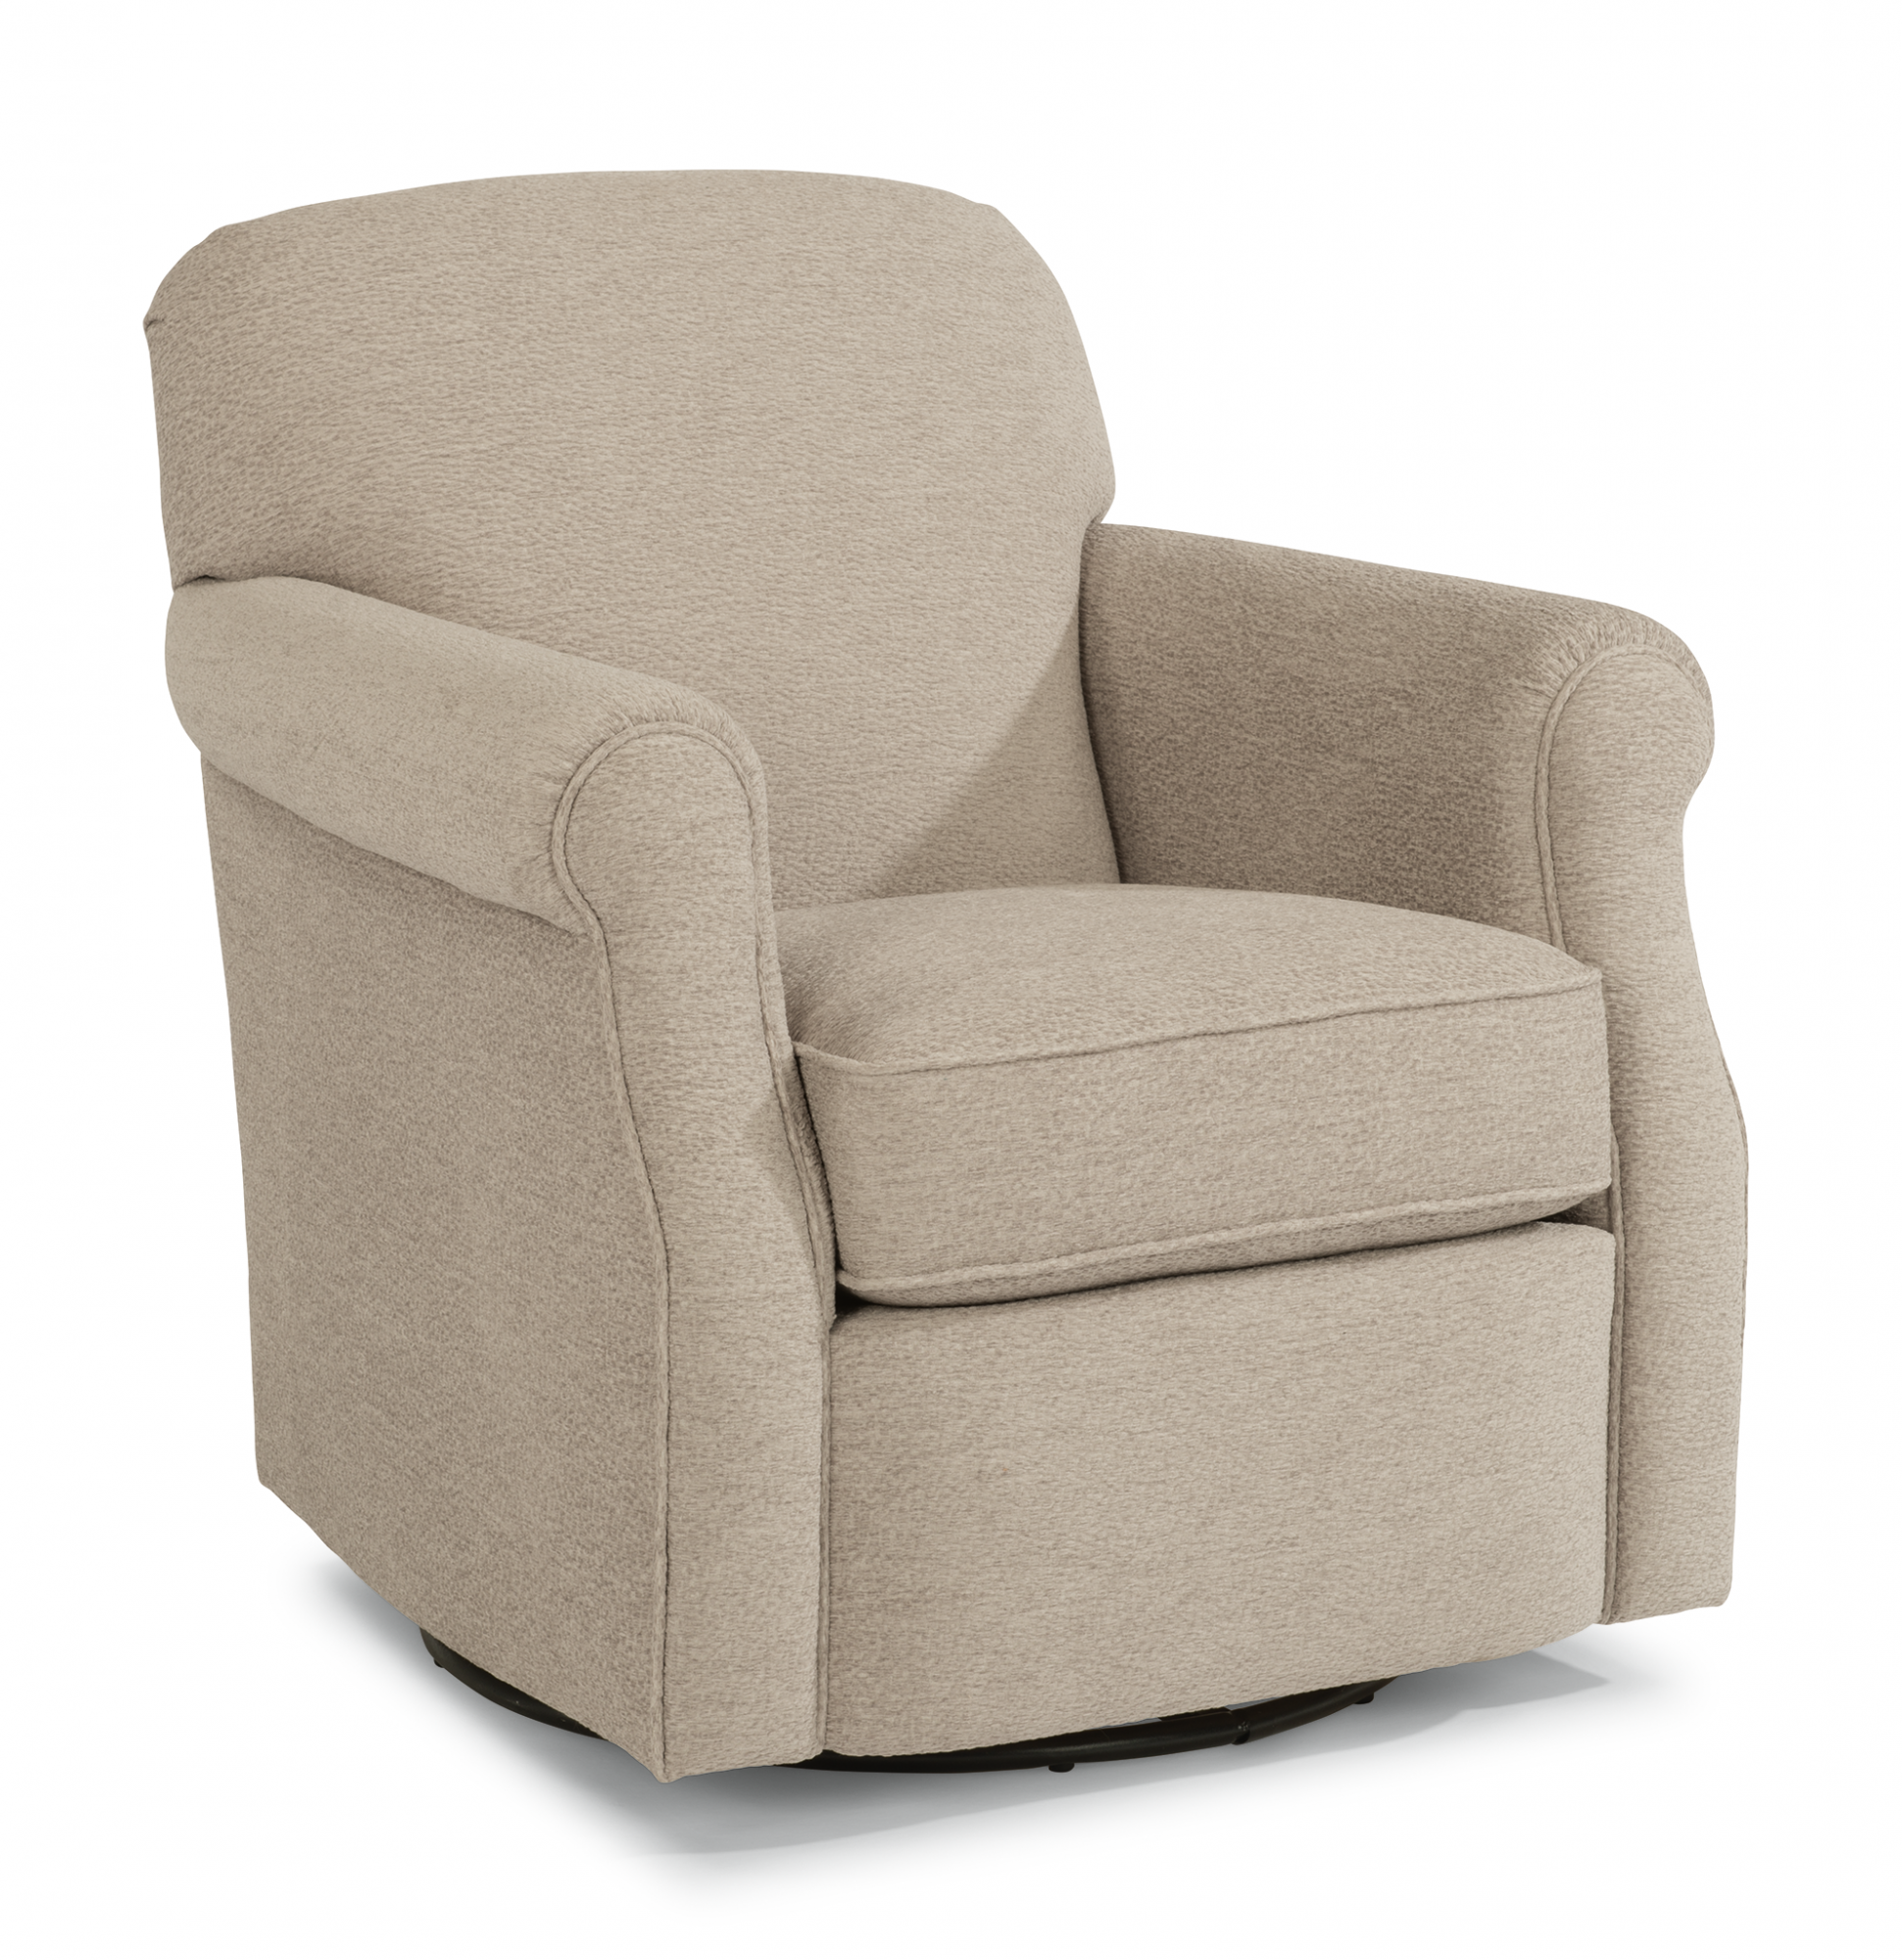 Flexsteel Mabel  Fabric Swivel Chair